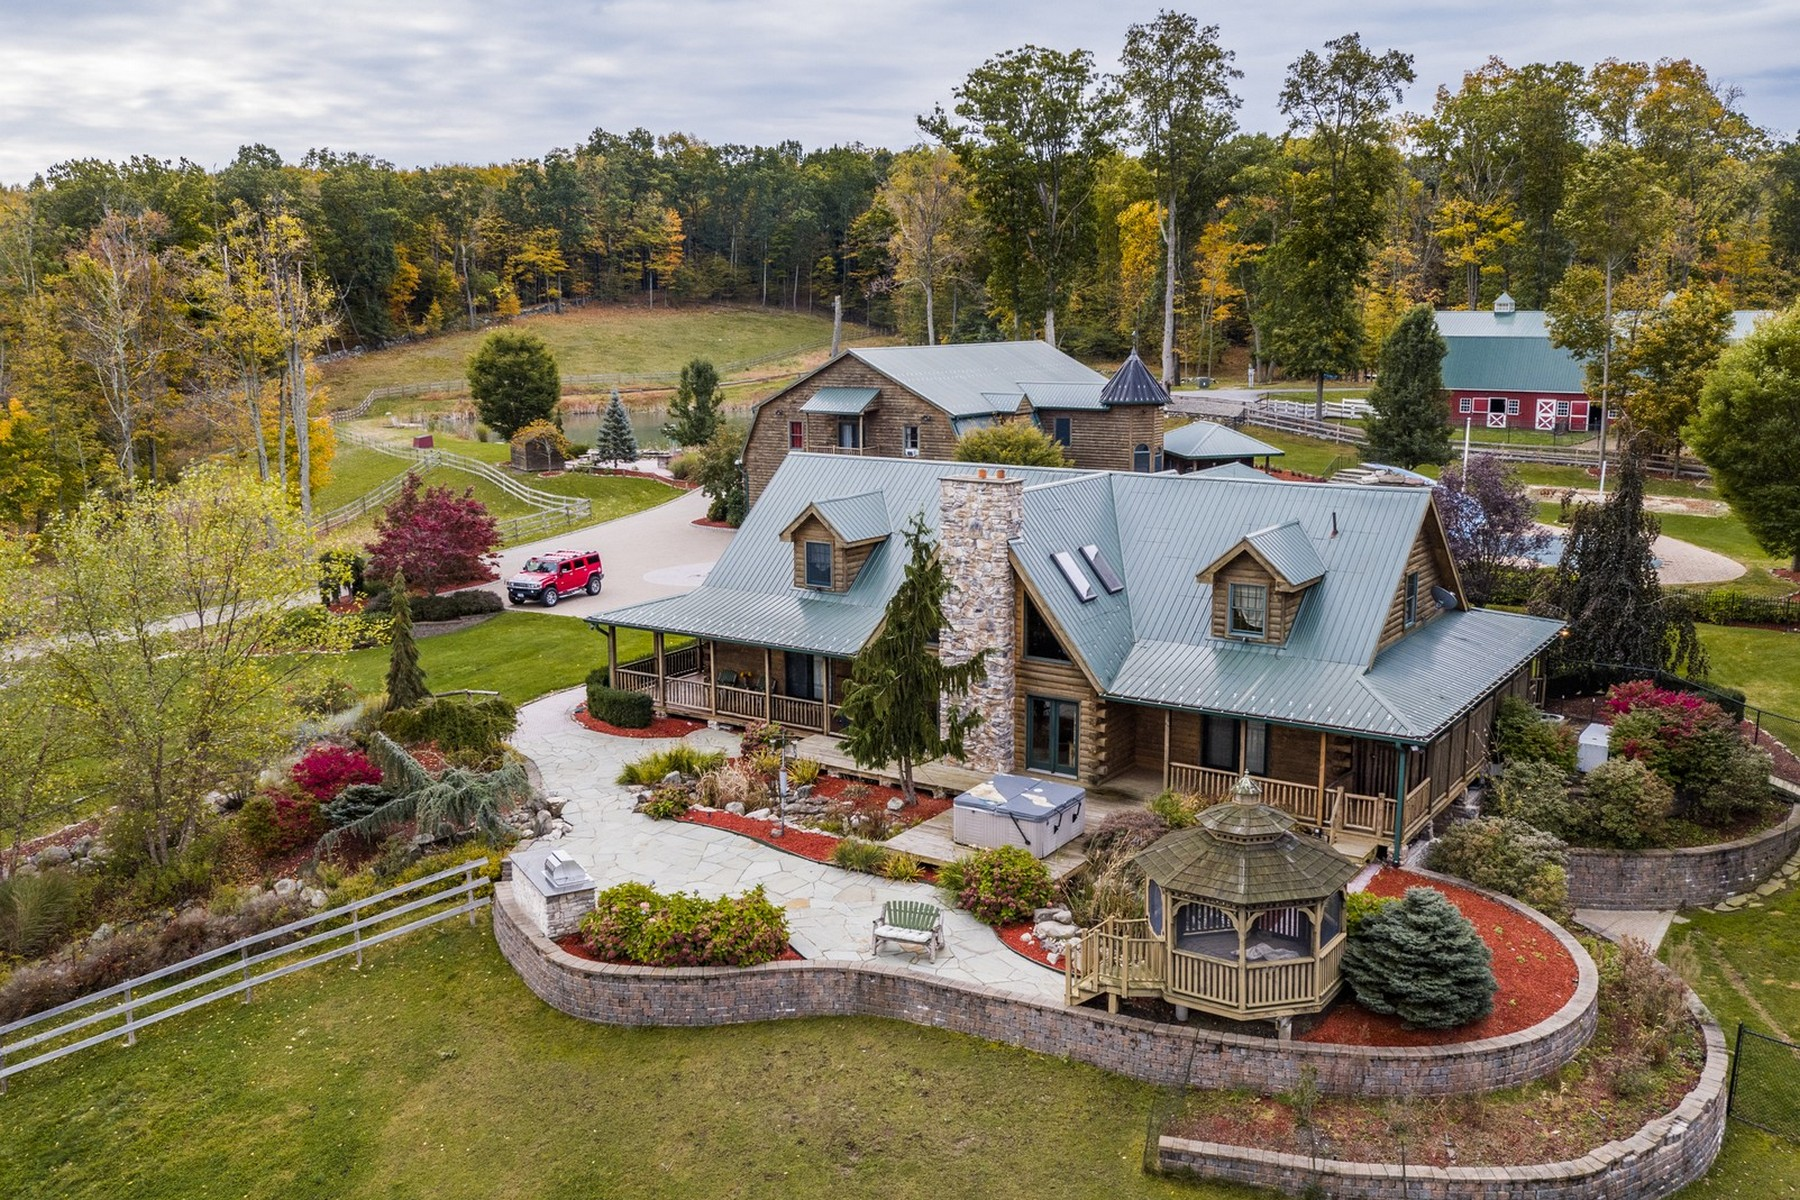 Single Family Home for Sale at Expansive Retreat on 38+ Acres 95 Judson Road Montgomery, New York 12549 United States